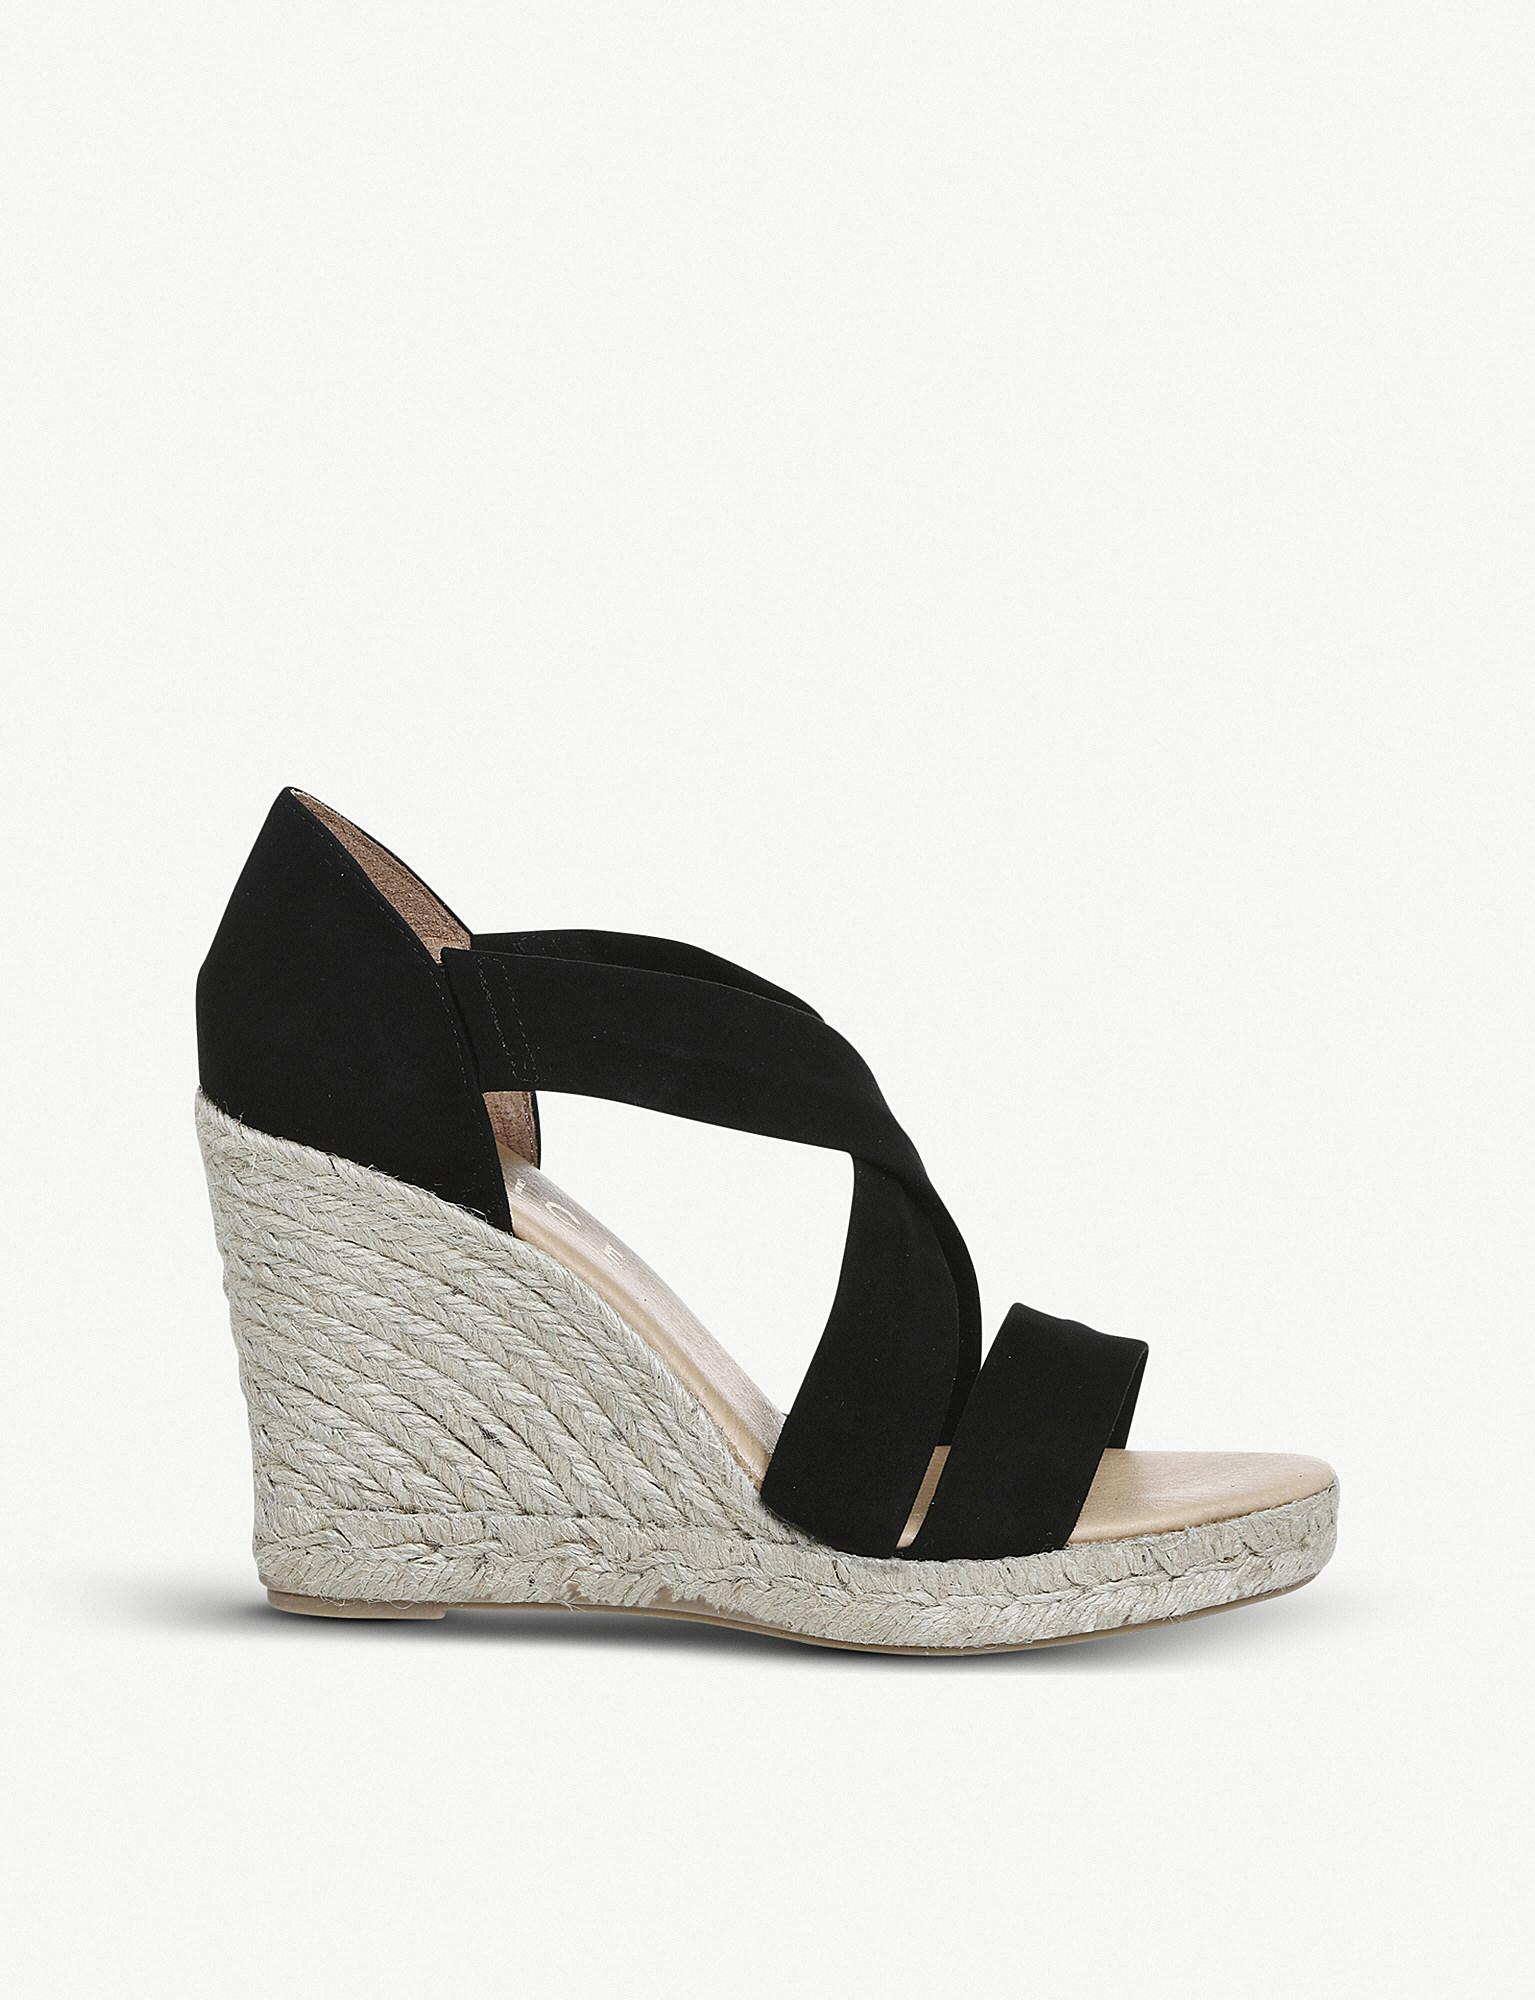 2e23a130e89 Office Holiday Suede Espadrille Wedge Heel Sandals in Black - Lyst